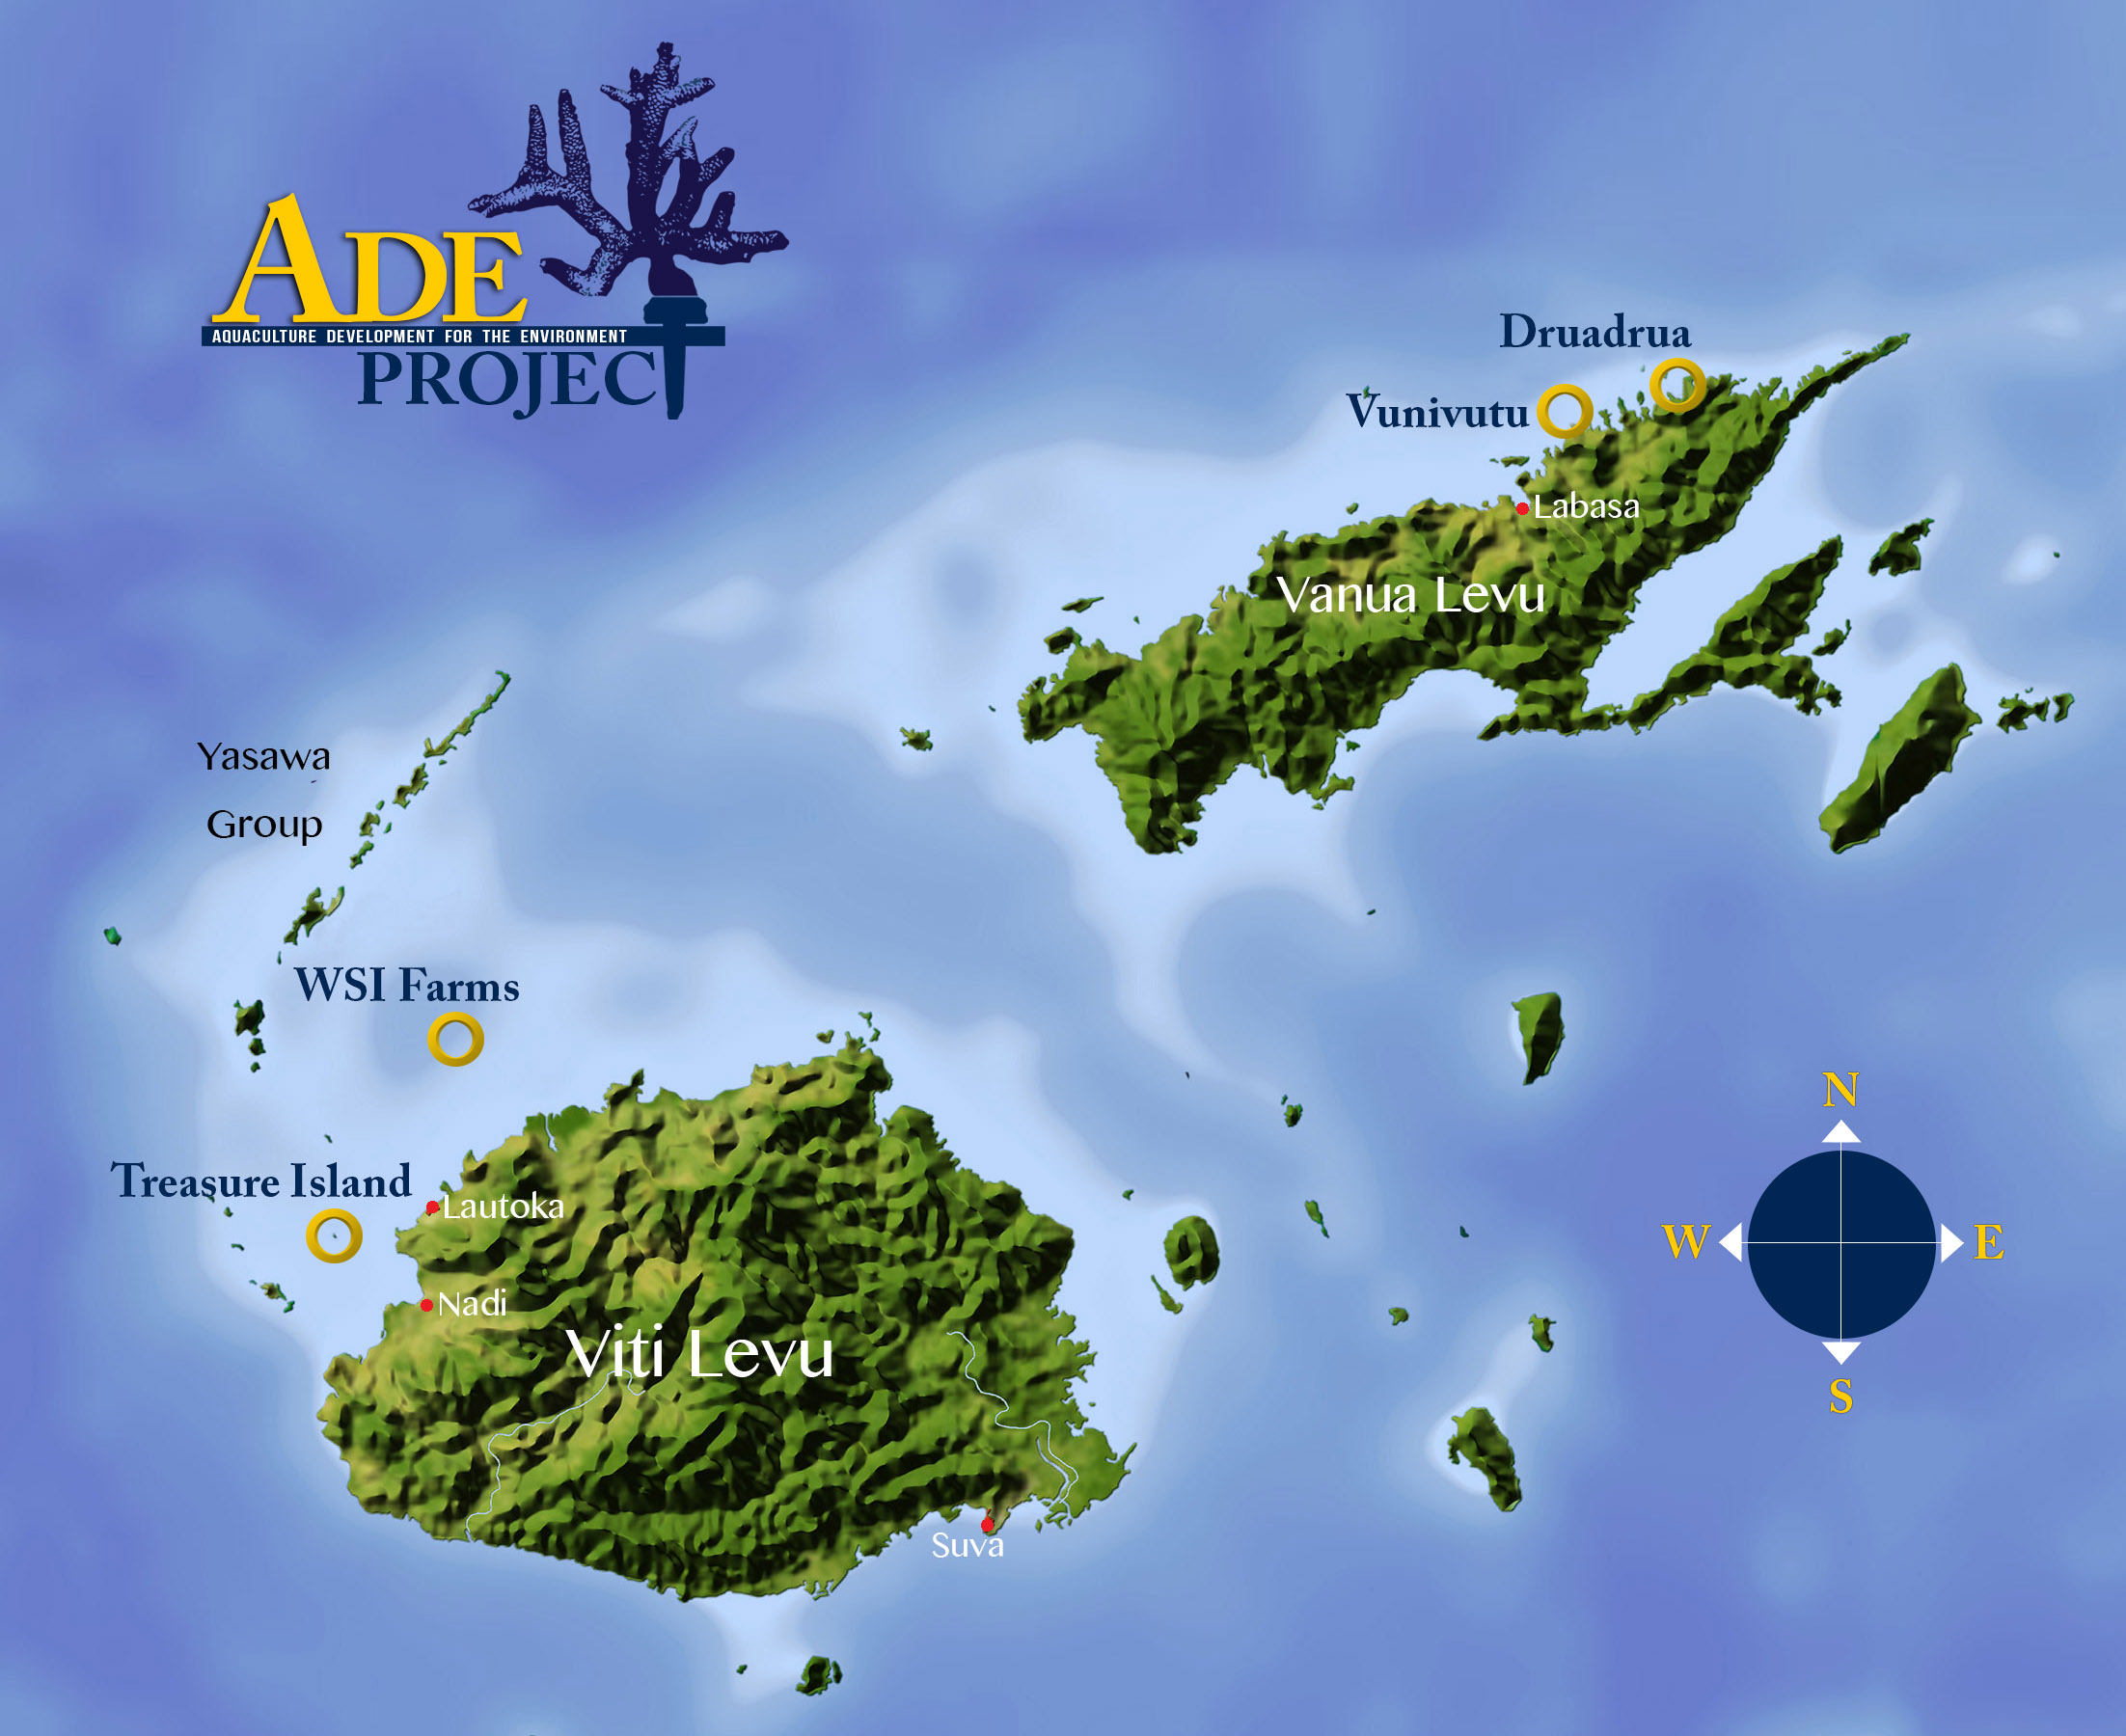 Fiji shaded relief map ade project ade project farm map gumiabroncs Choice Image